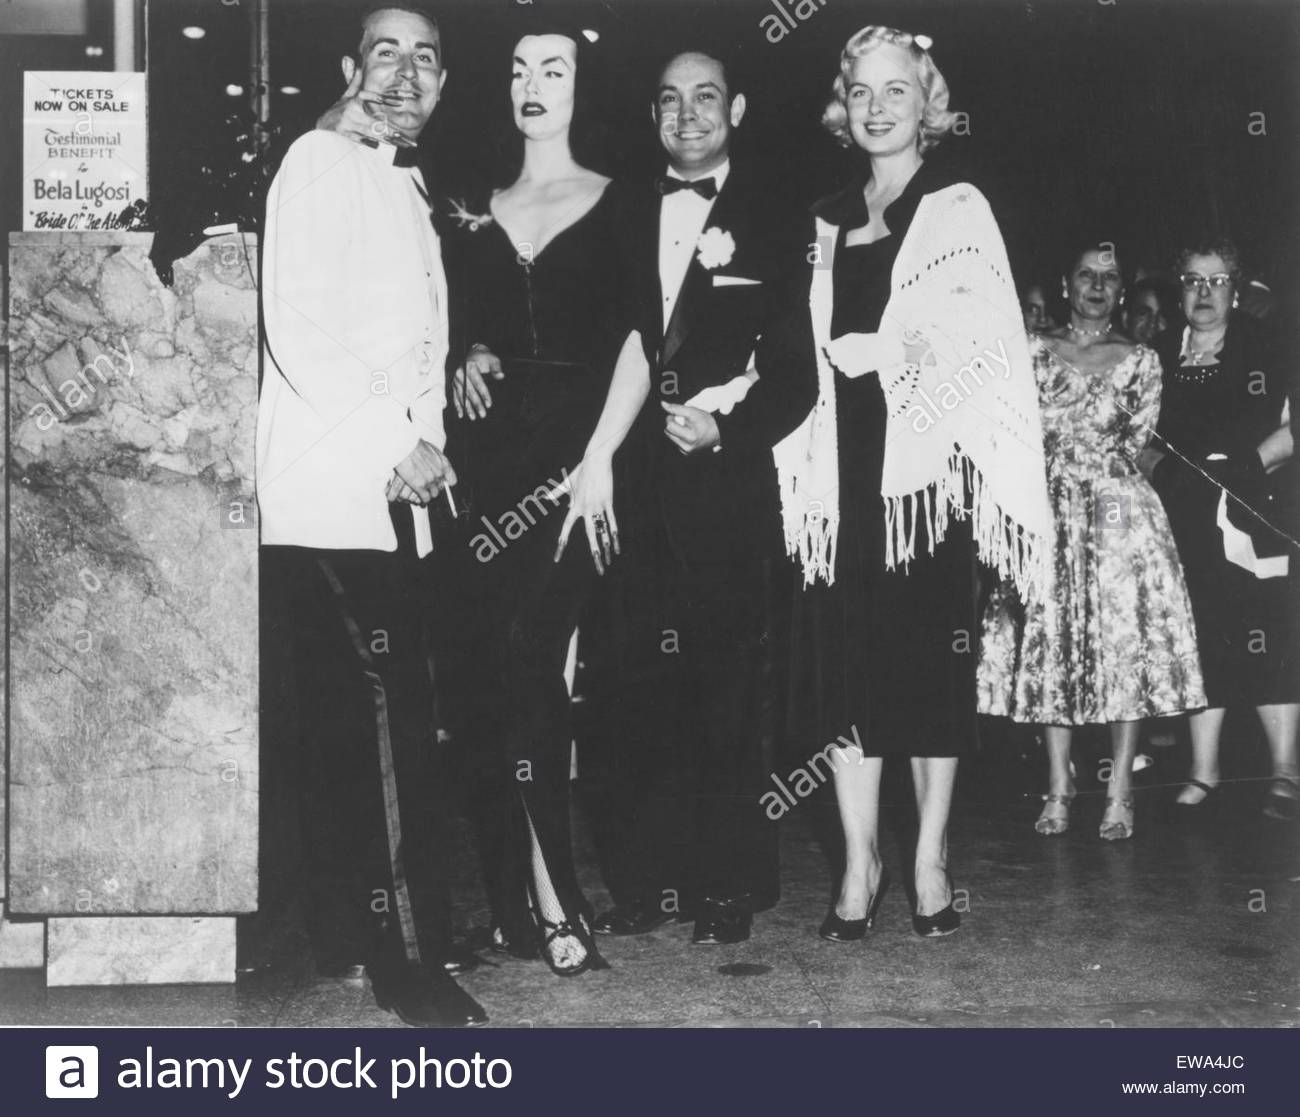 Ed Wood and Vampire (Maila Nurmi) left, pose for photos at an event, circa 1950s. Courtesy Granamour Weems Collection. - Stock Image